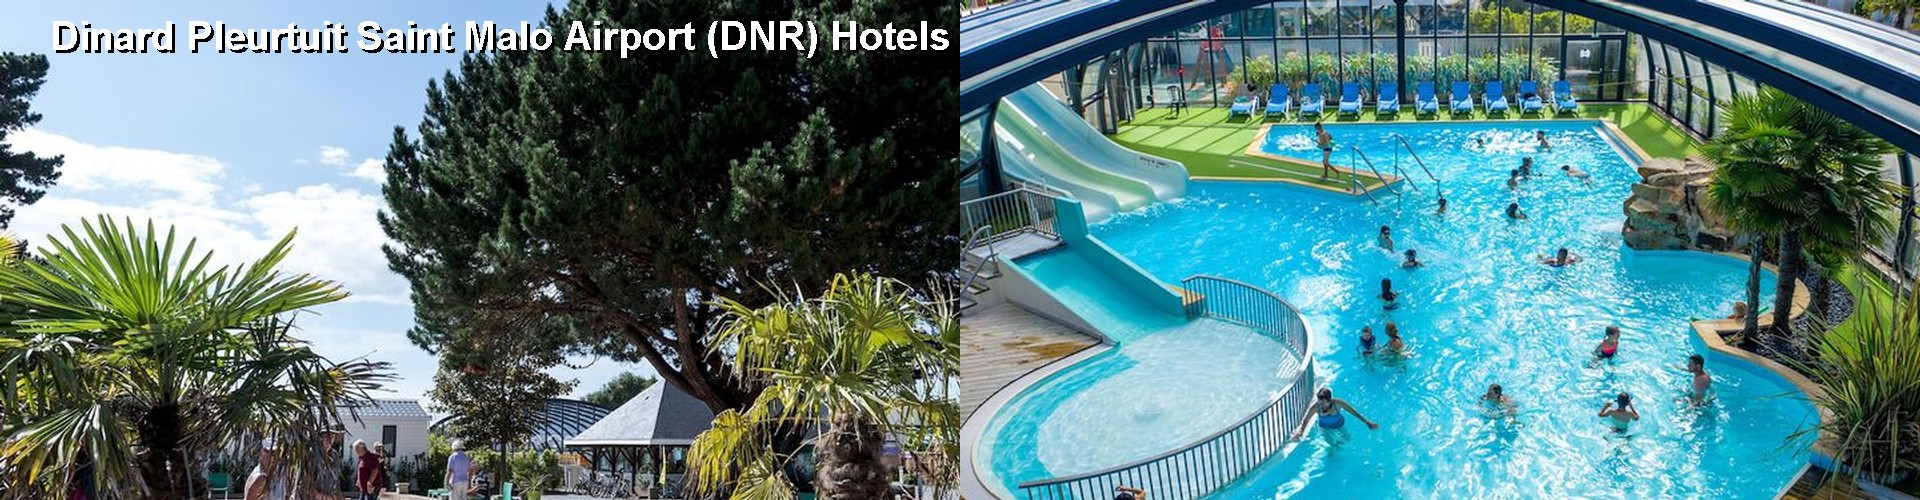 5 Best Hotels near Dinard Pleurtuit Saint Malo Airport (DNR)